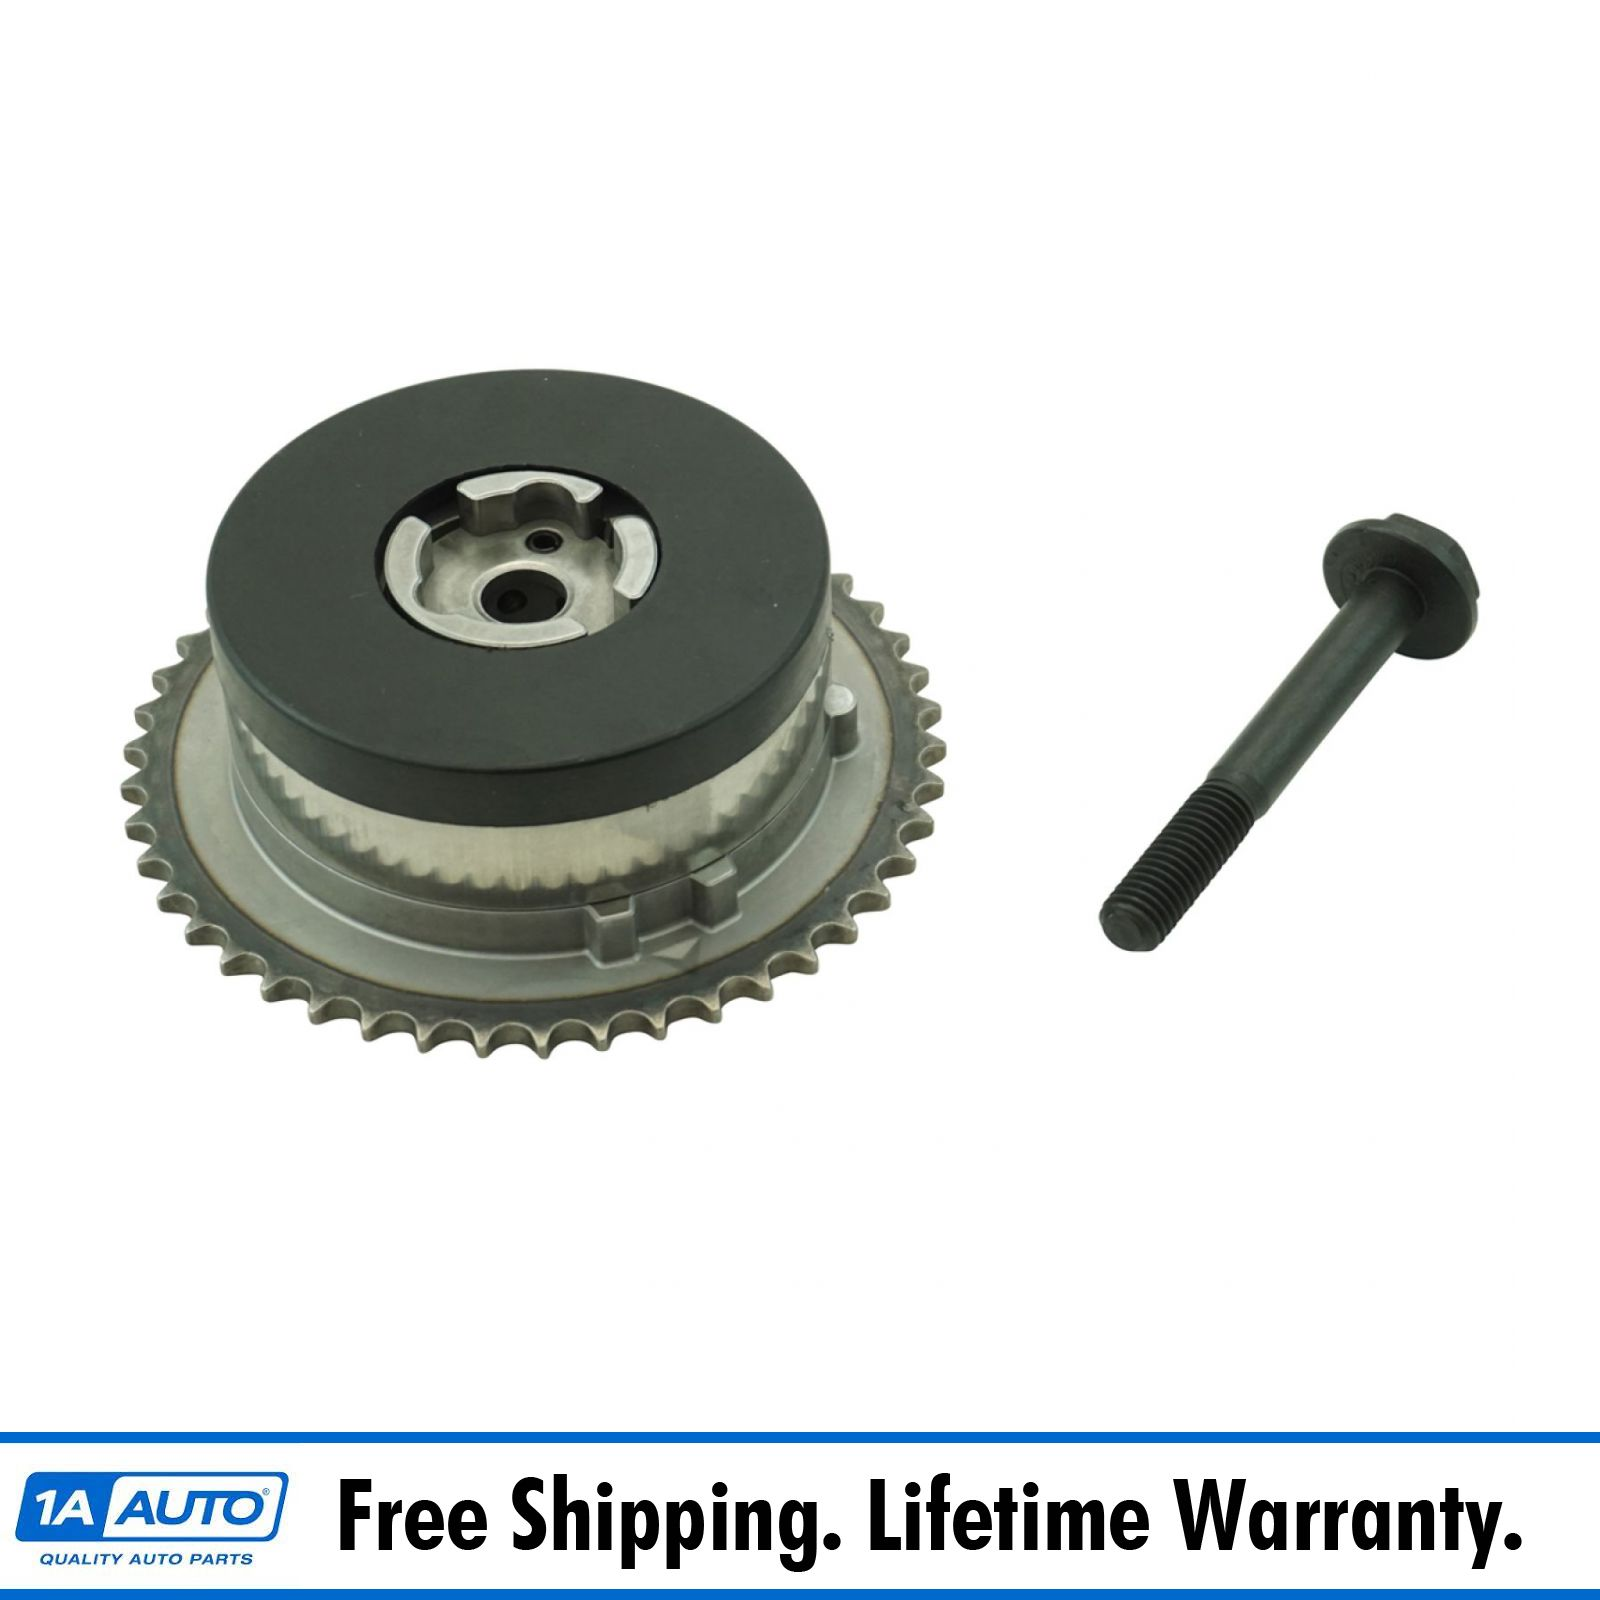 NEW VVT VARIABLE TIMING SPROCKET CAM PHASER FOR TOYOTA /& CHEVY /& PONTIAC